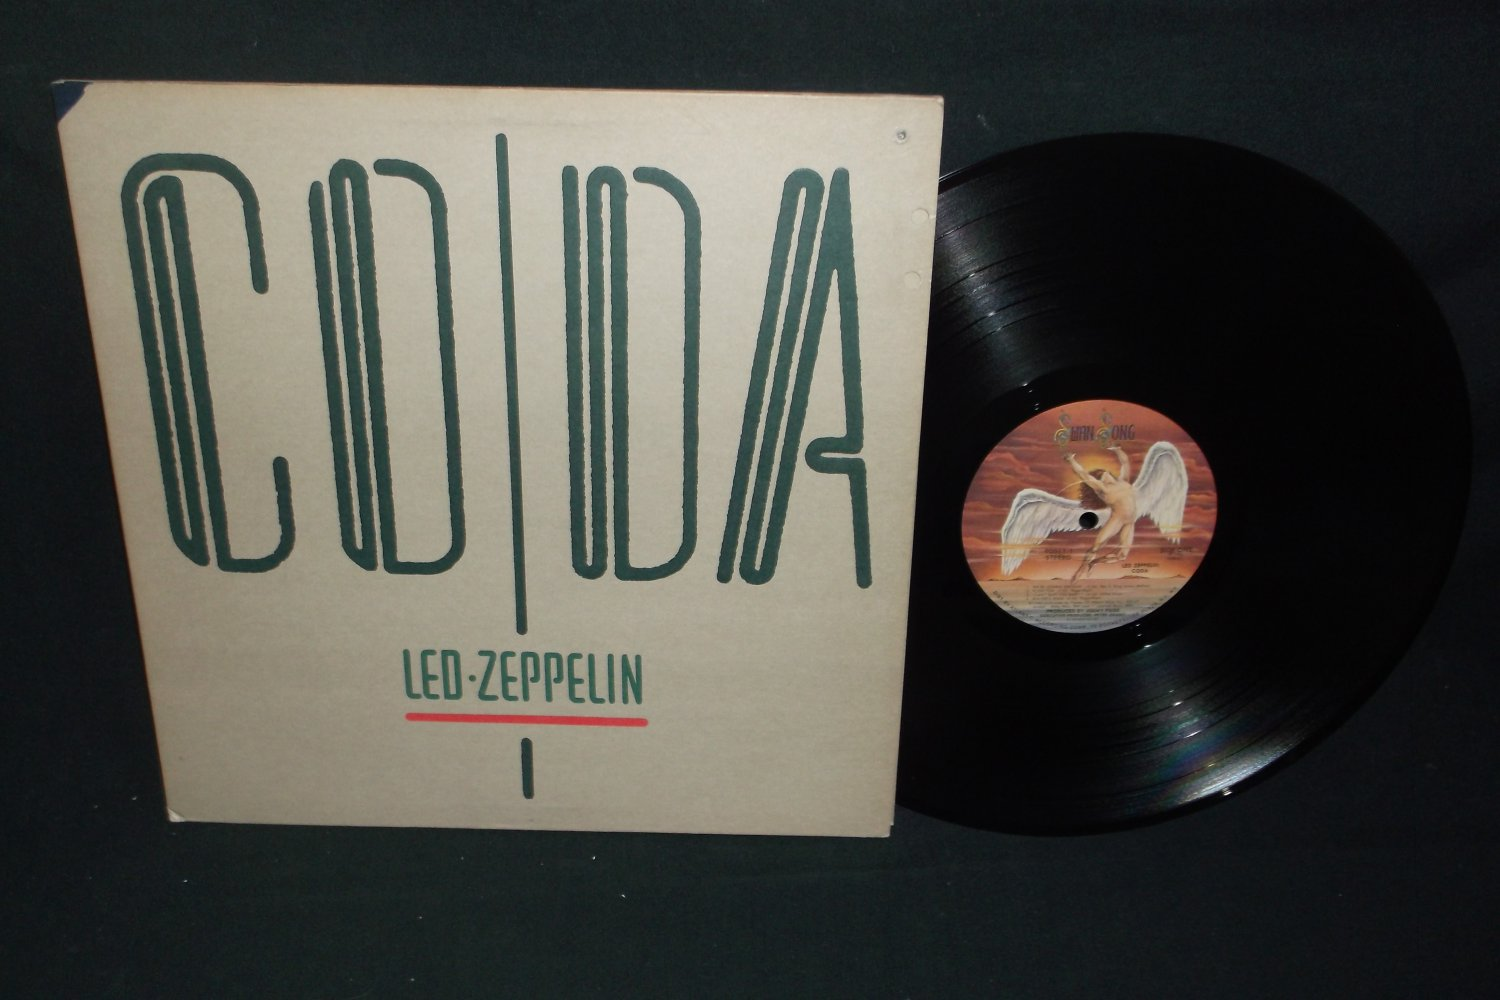 Led Zeppelin - Coda  - SWAN SONG 90051 - Rock LP